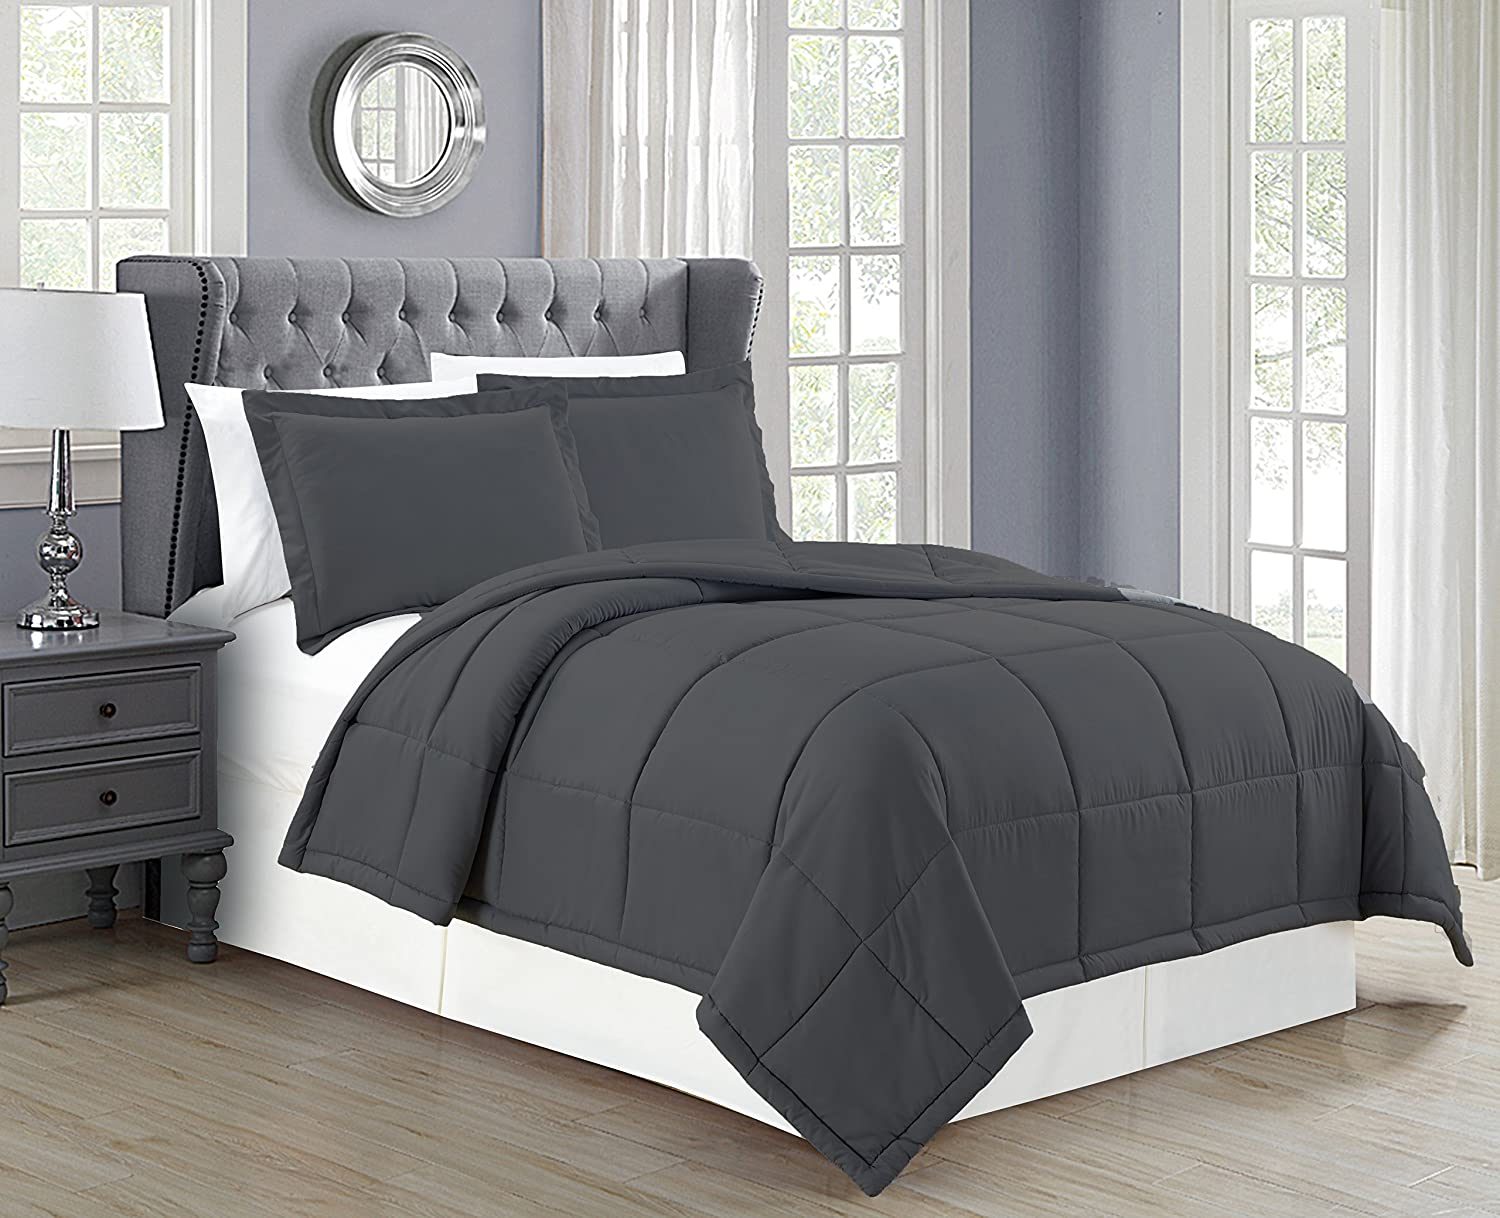 3pc Full/Queen Down Alternative Comforter Set Solid Charcoal/Dark Grey